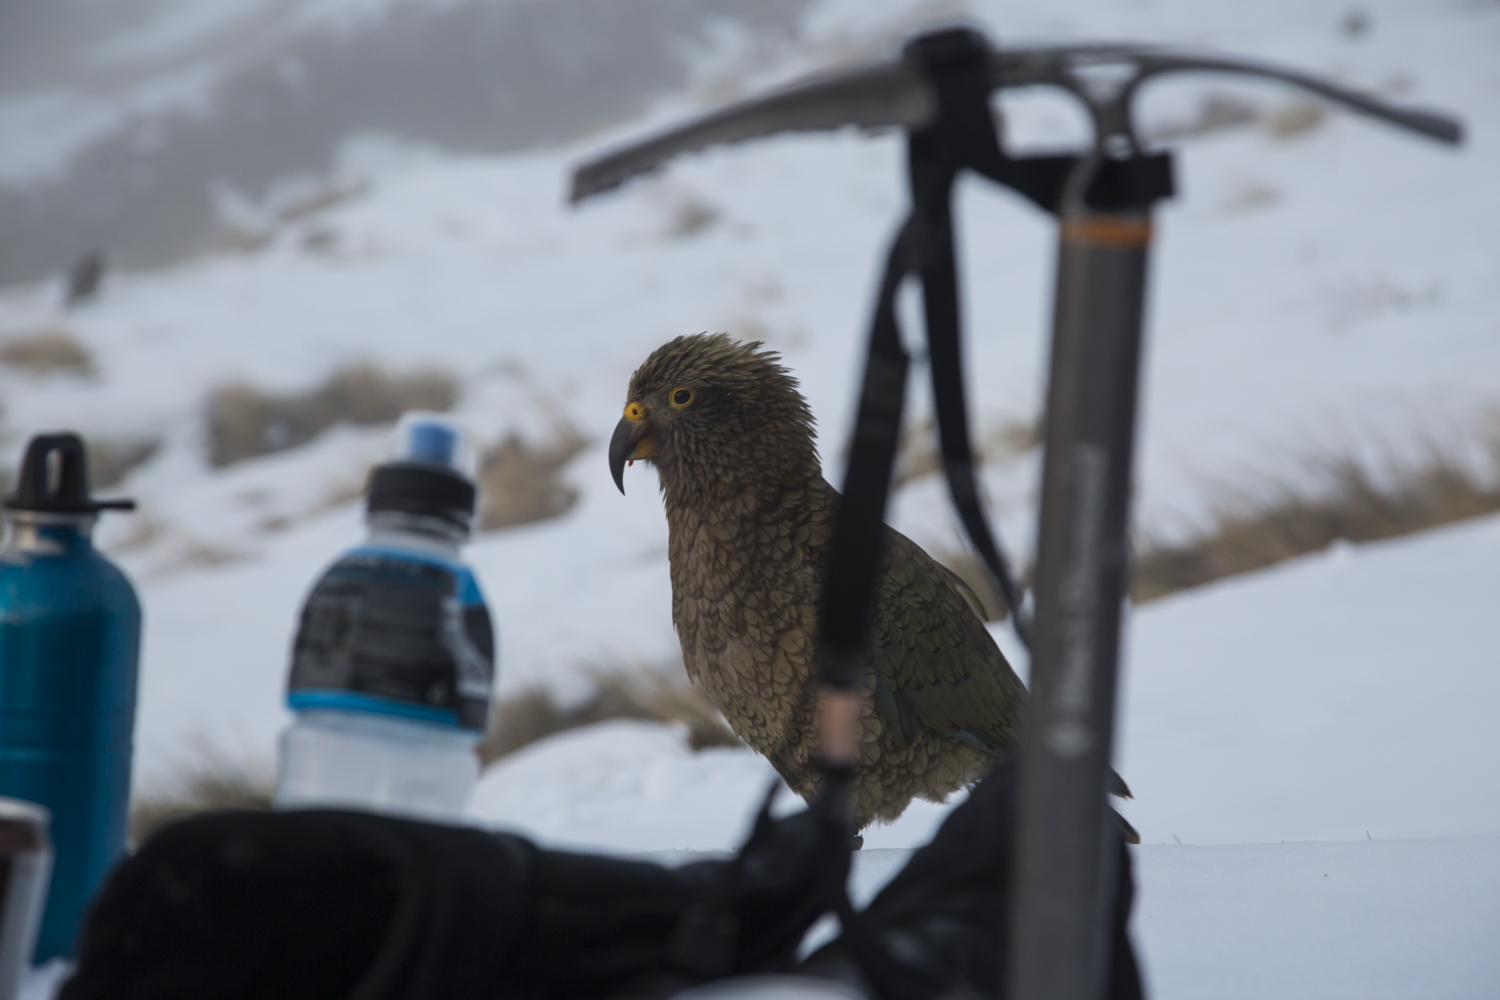 kea trying to steal our stuff